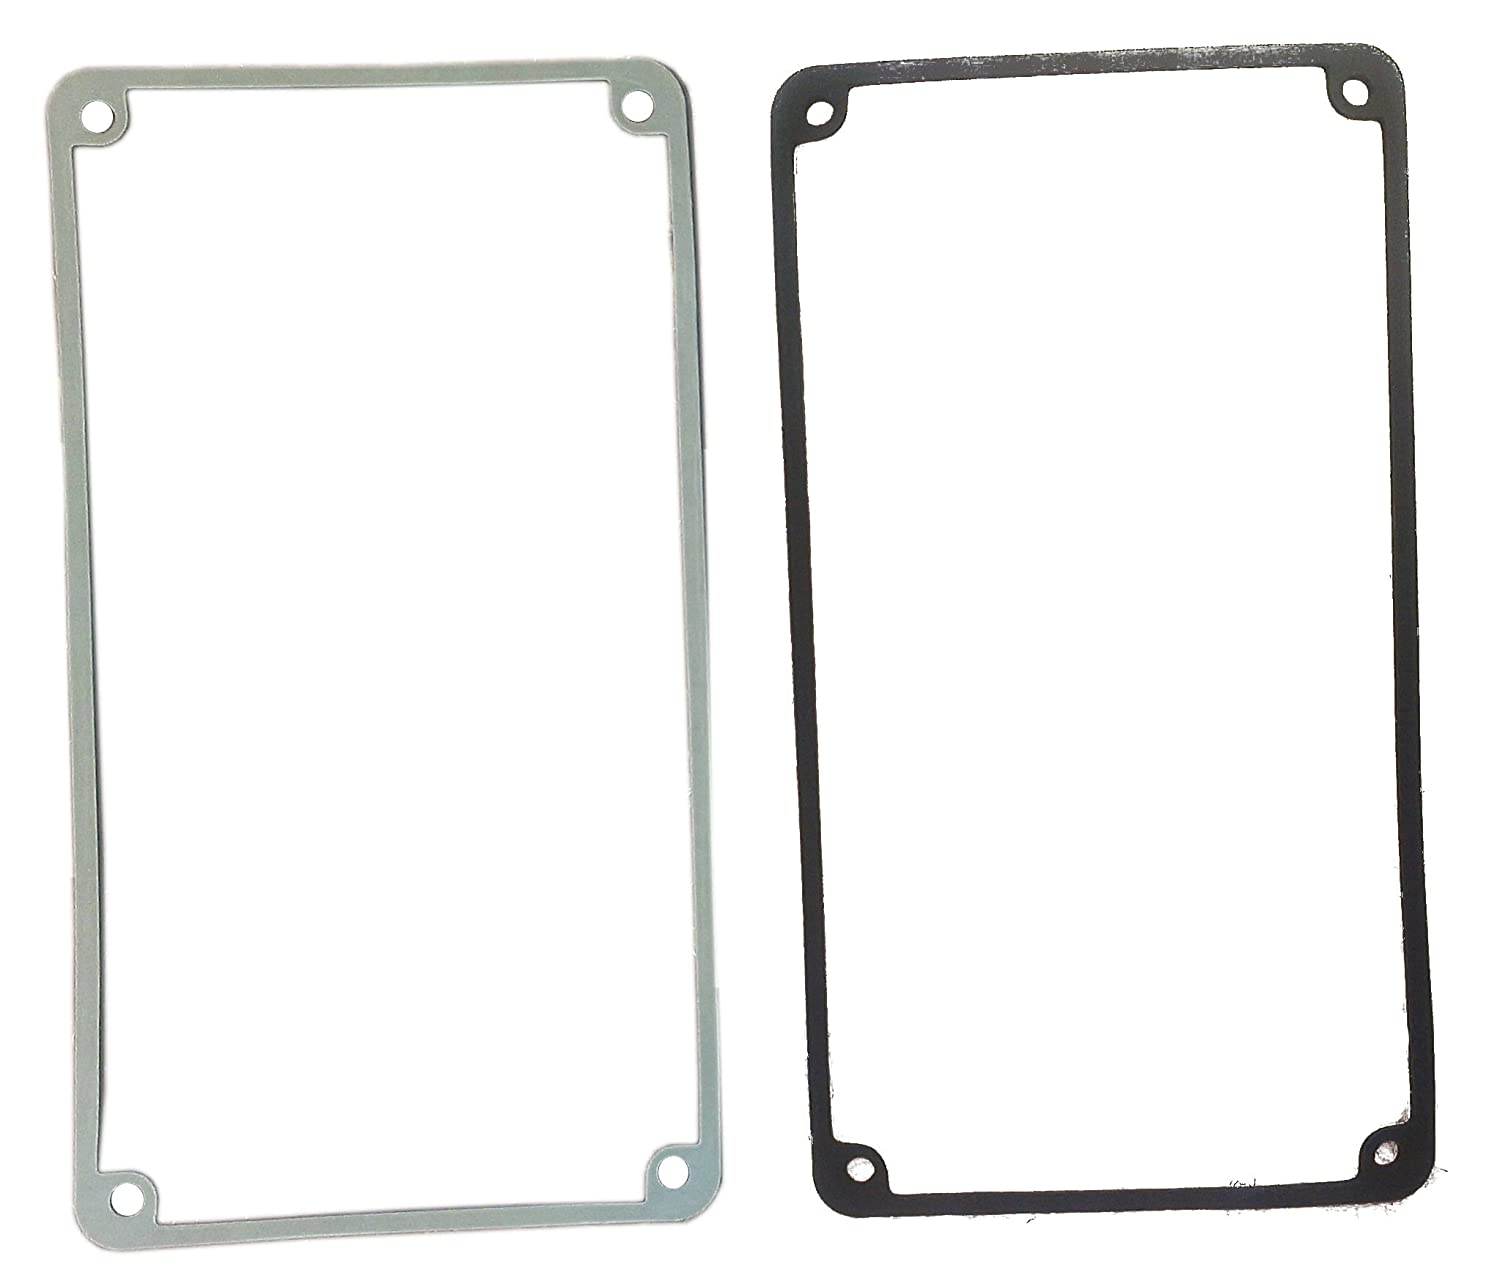 Hammond 1590PGASKET Silicone Gasket Inches 6.01 x 3.24 mm 153mm x 82mm 2 pack